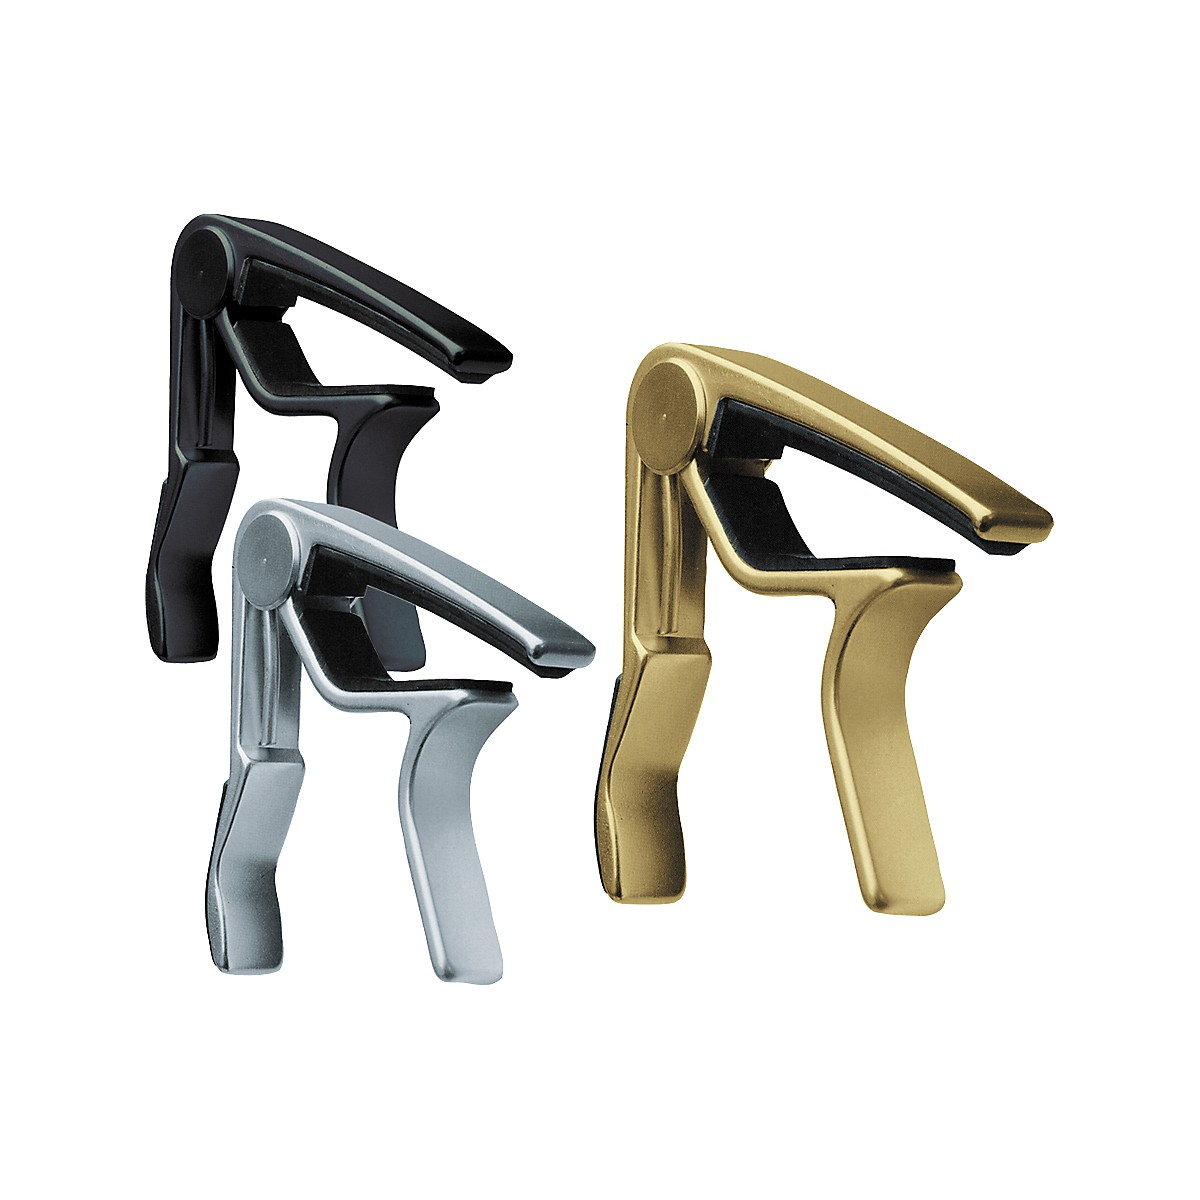 Dunlop Trigger Curved Guitar Capo